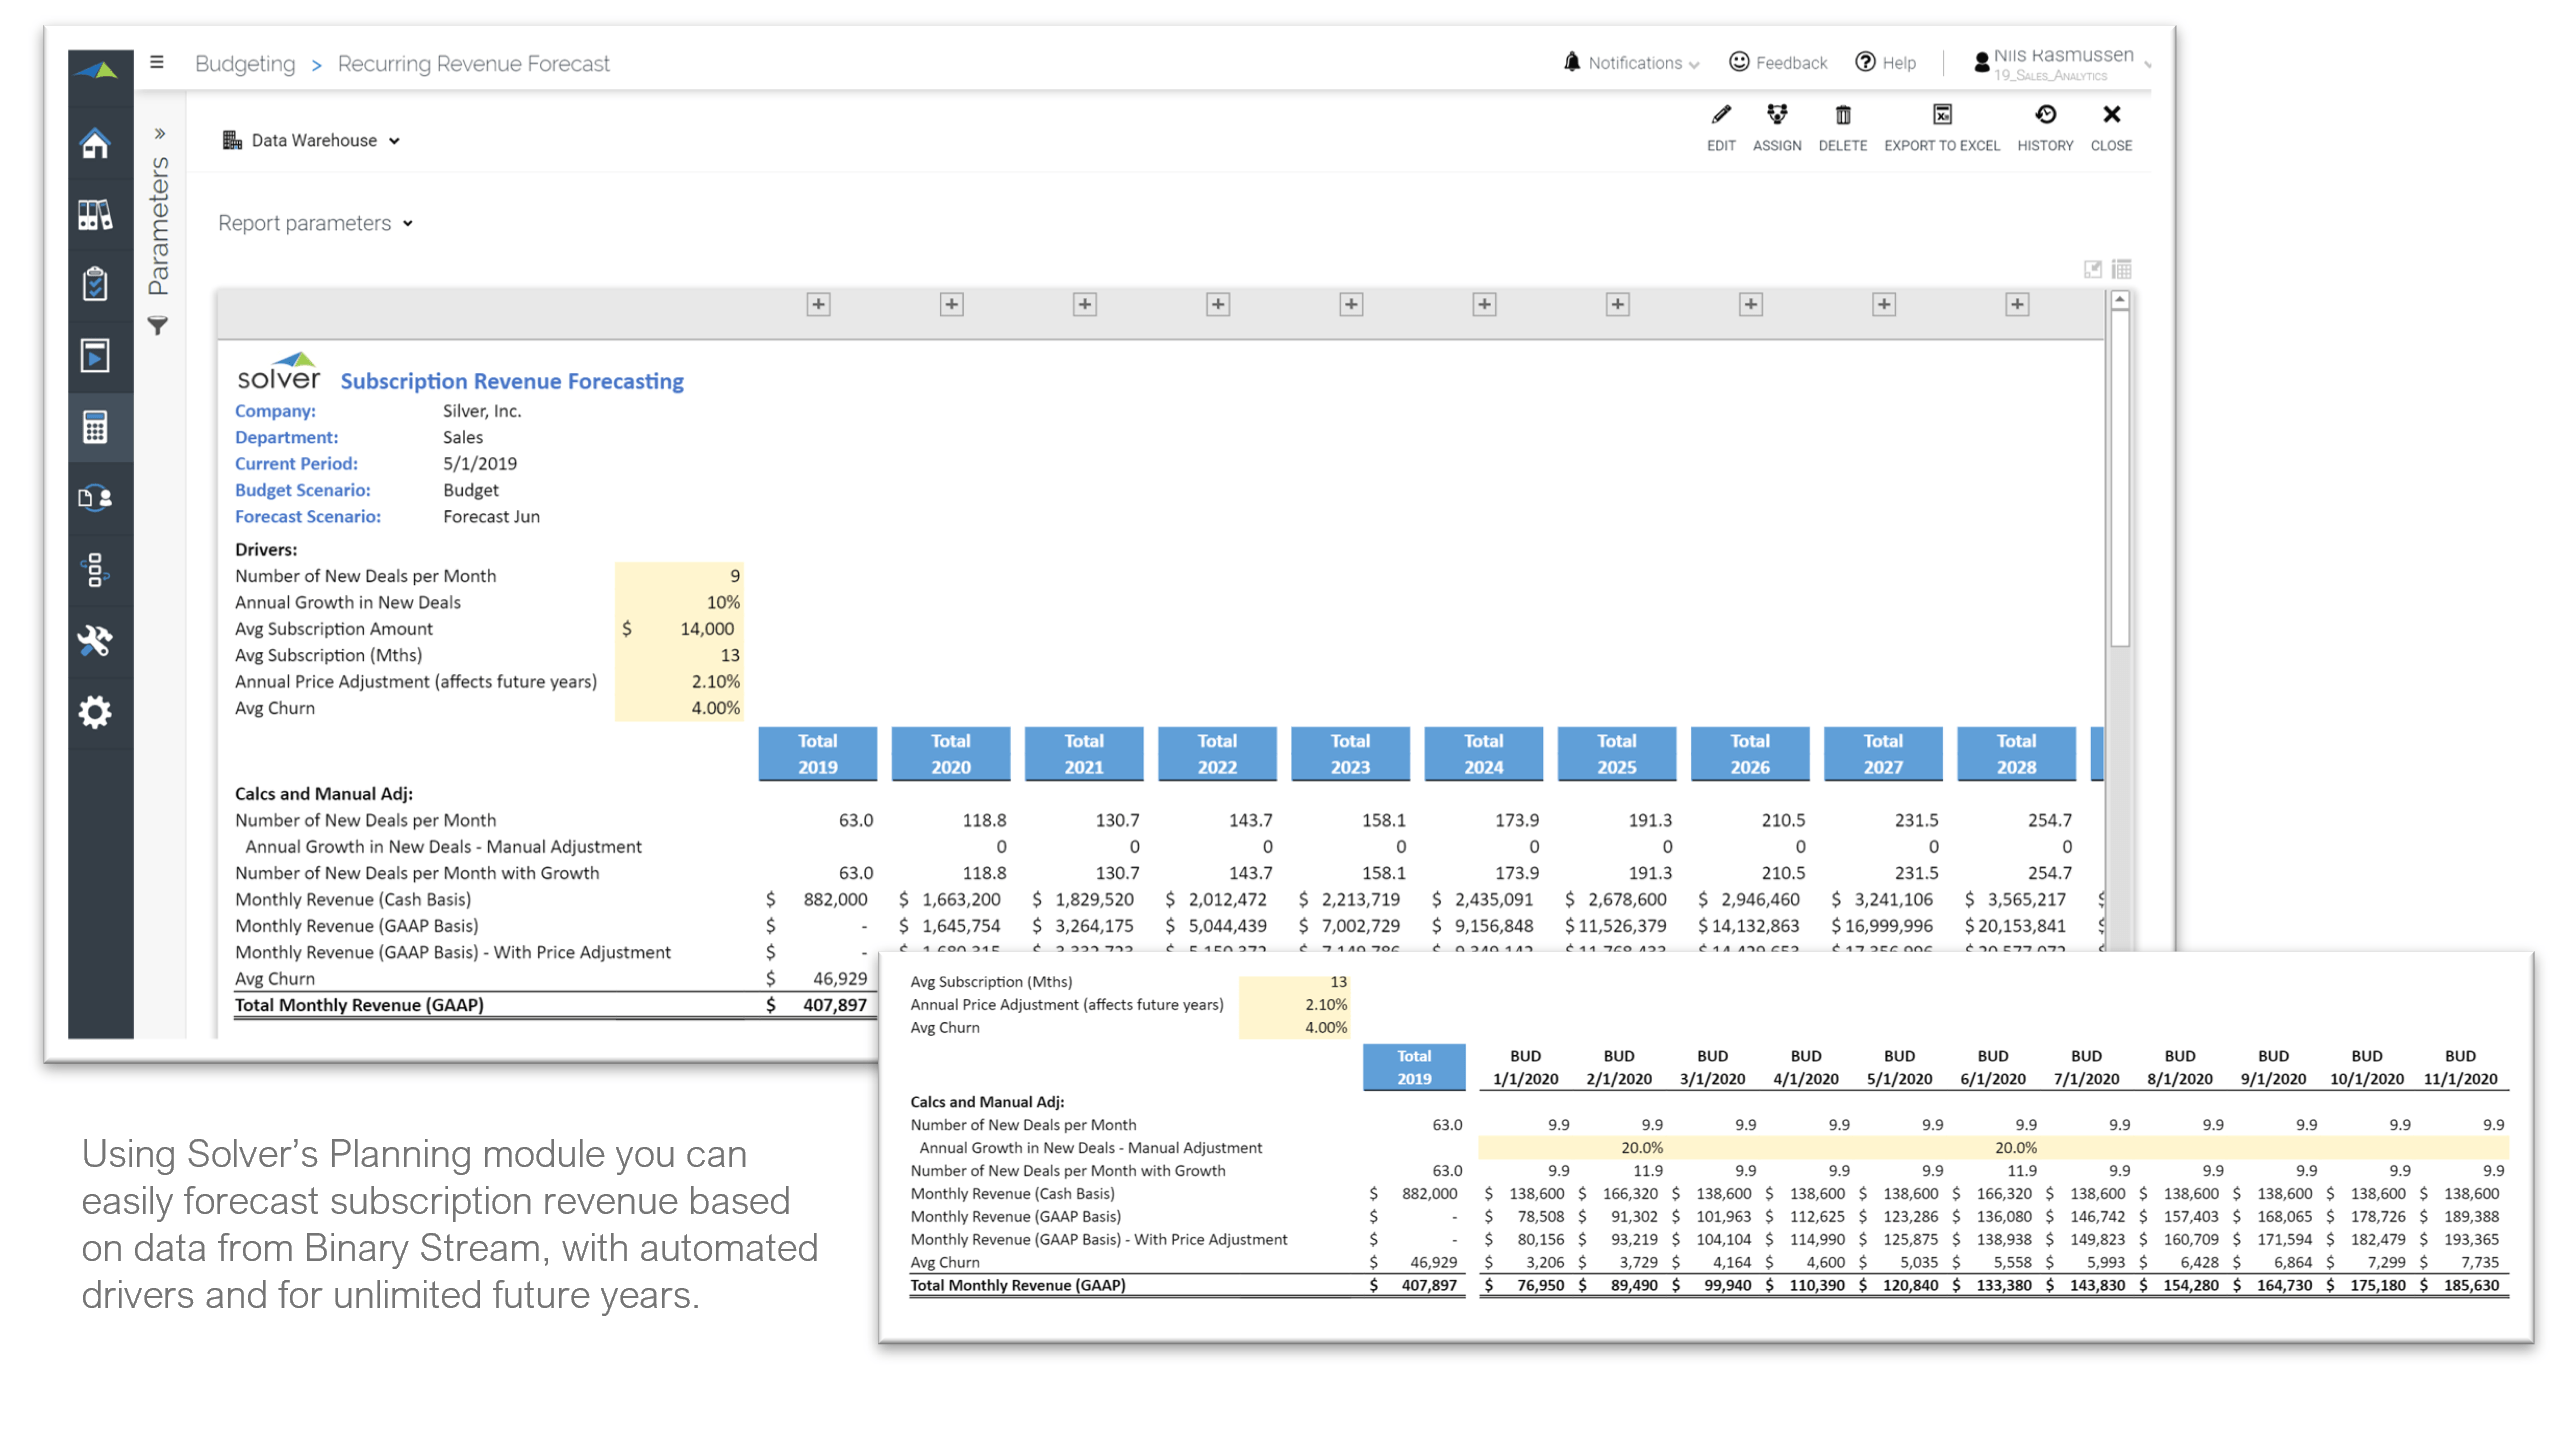 Multi-year subscription revenue and churn budgeting and forecasting with monthly detail